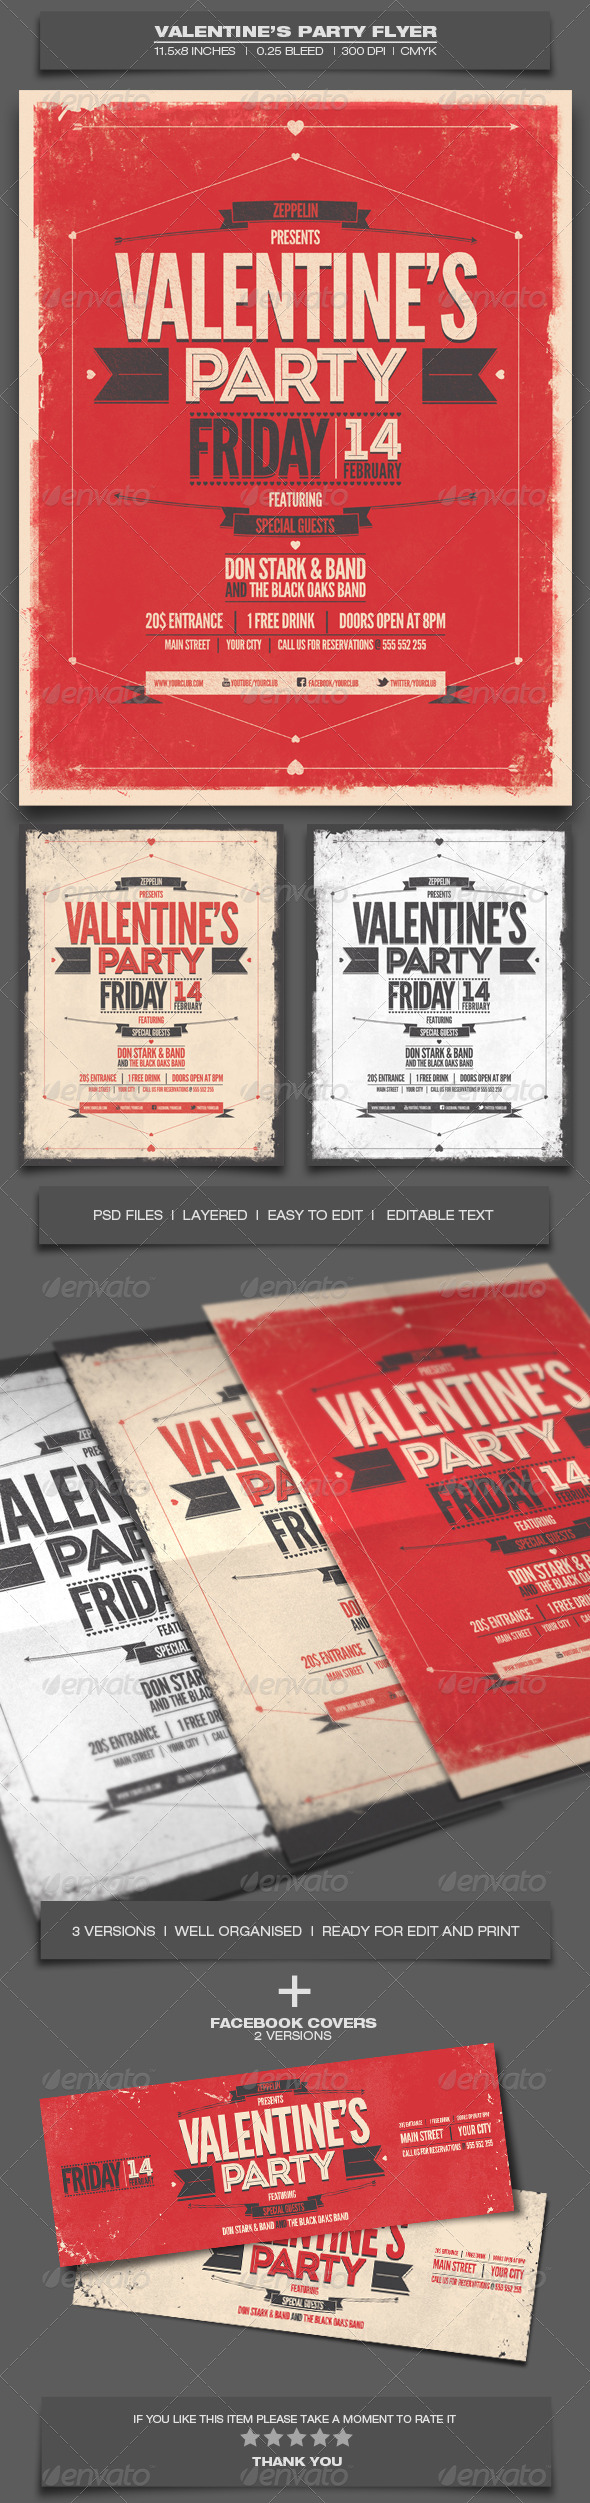 Valentine's Day Party - Event Flyer Template 8 - Holidays Events